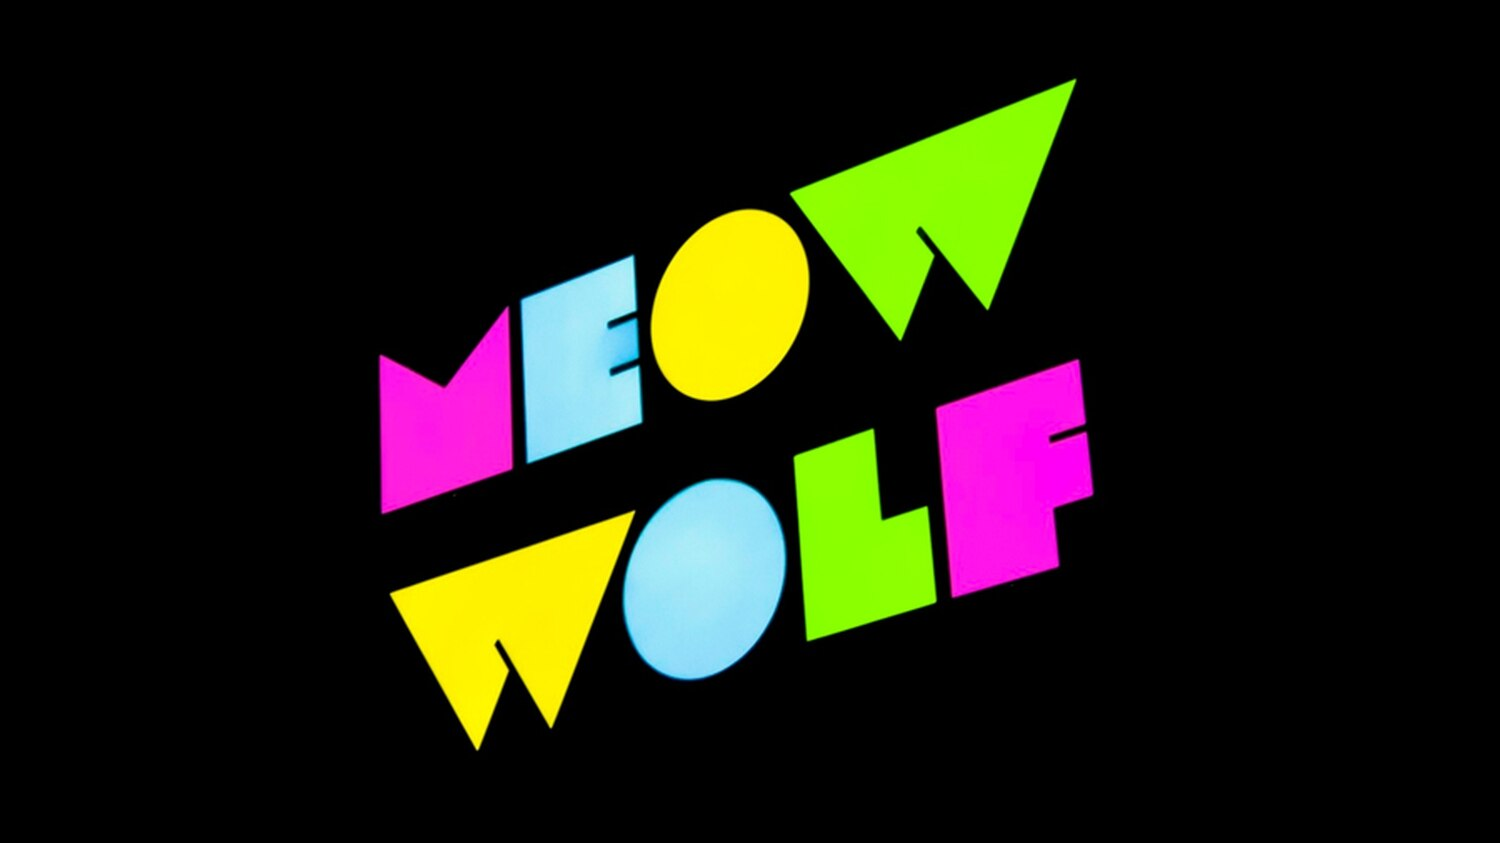 City says Meow Wolf Violated Living Wage.